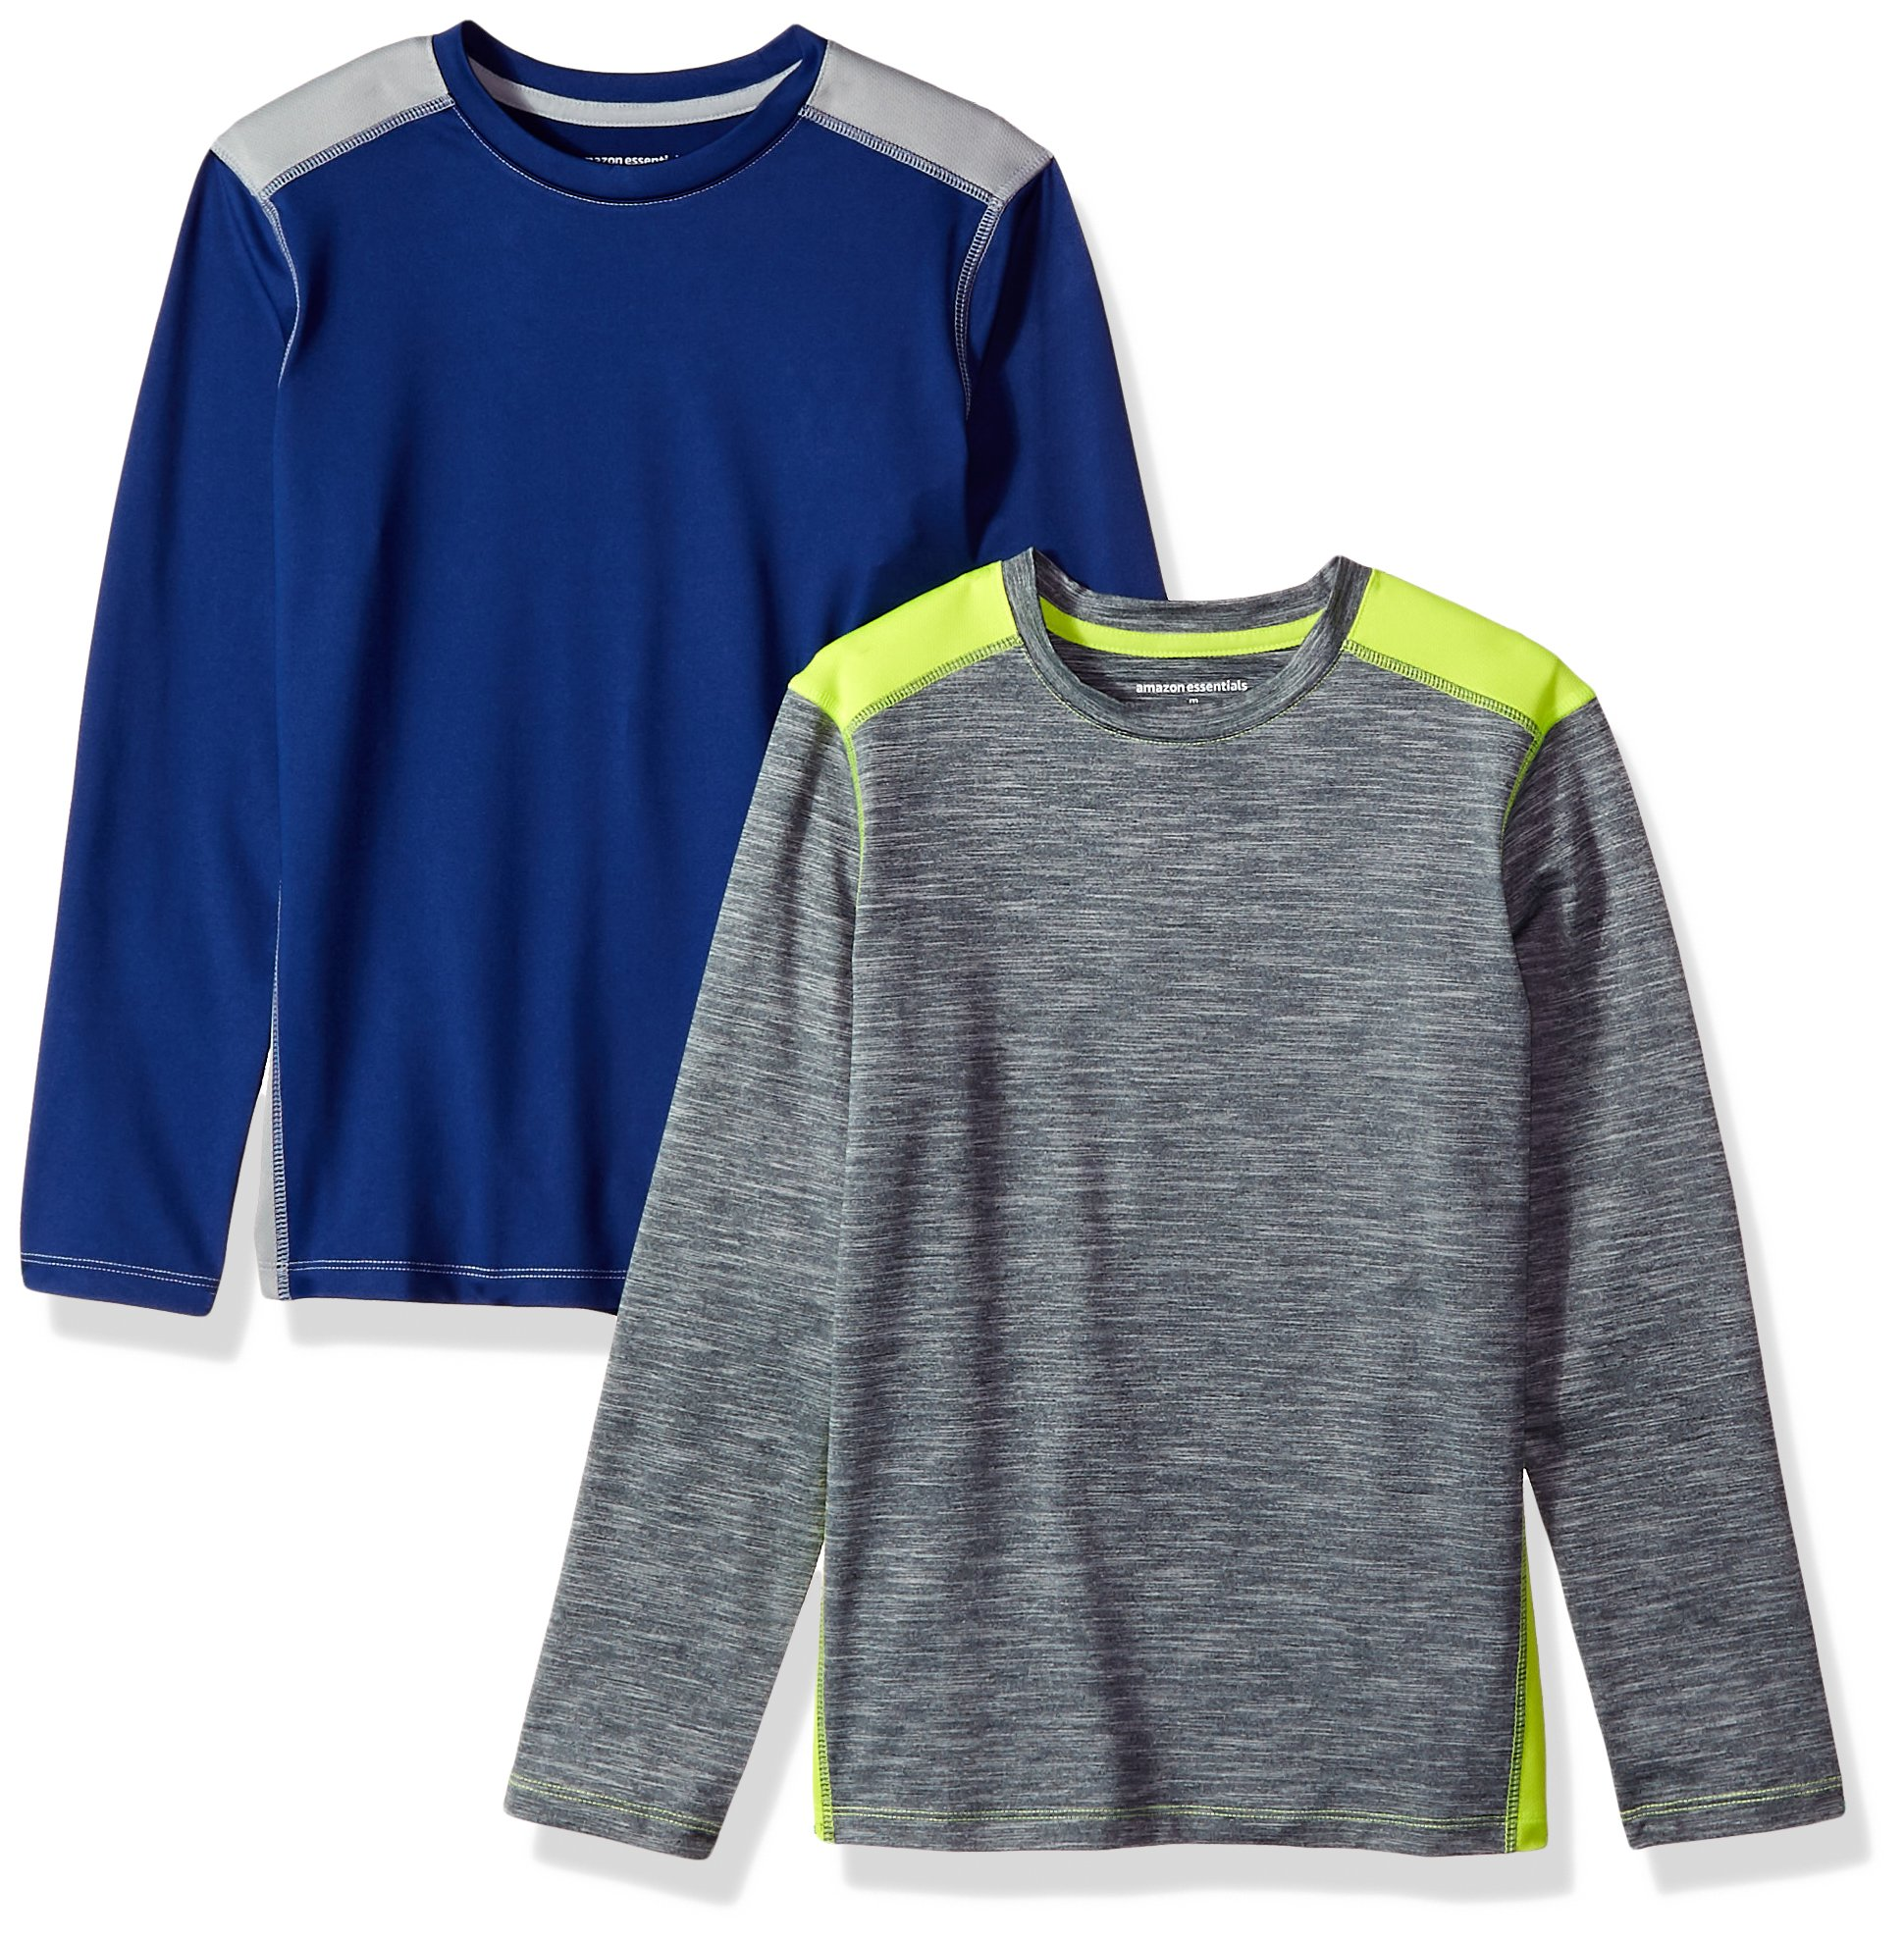 Amazon Essentials Boys' 2-Pack Long-Sleeve Pieced Active Tee, Navy/Grey/Grey/Lime, Small